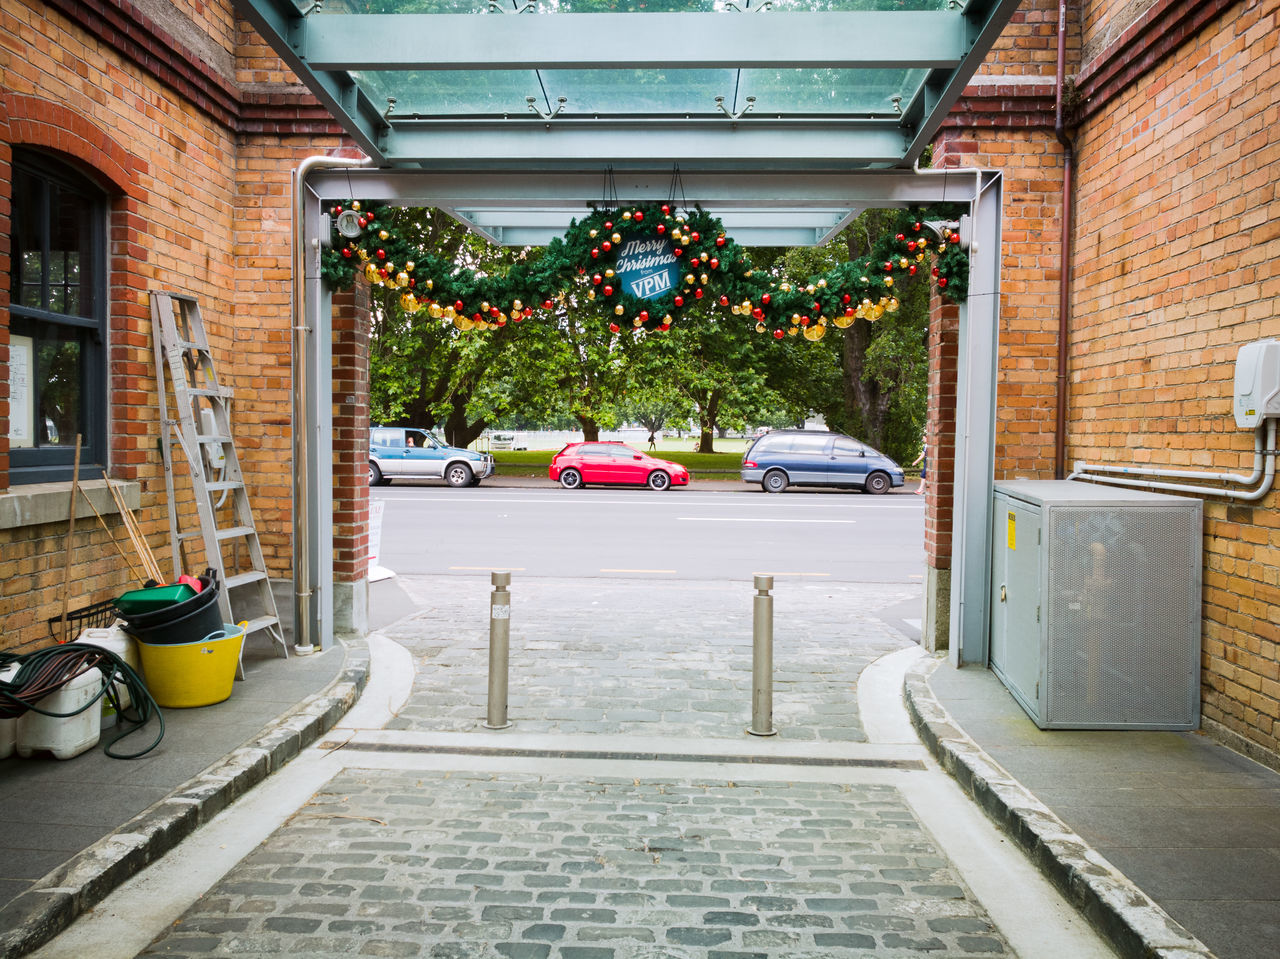 Christmas Present Architecture No People Built Structure Outdoors Christmas Decoration Christmas Present Cars Frame Bricks